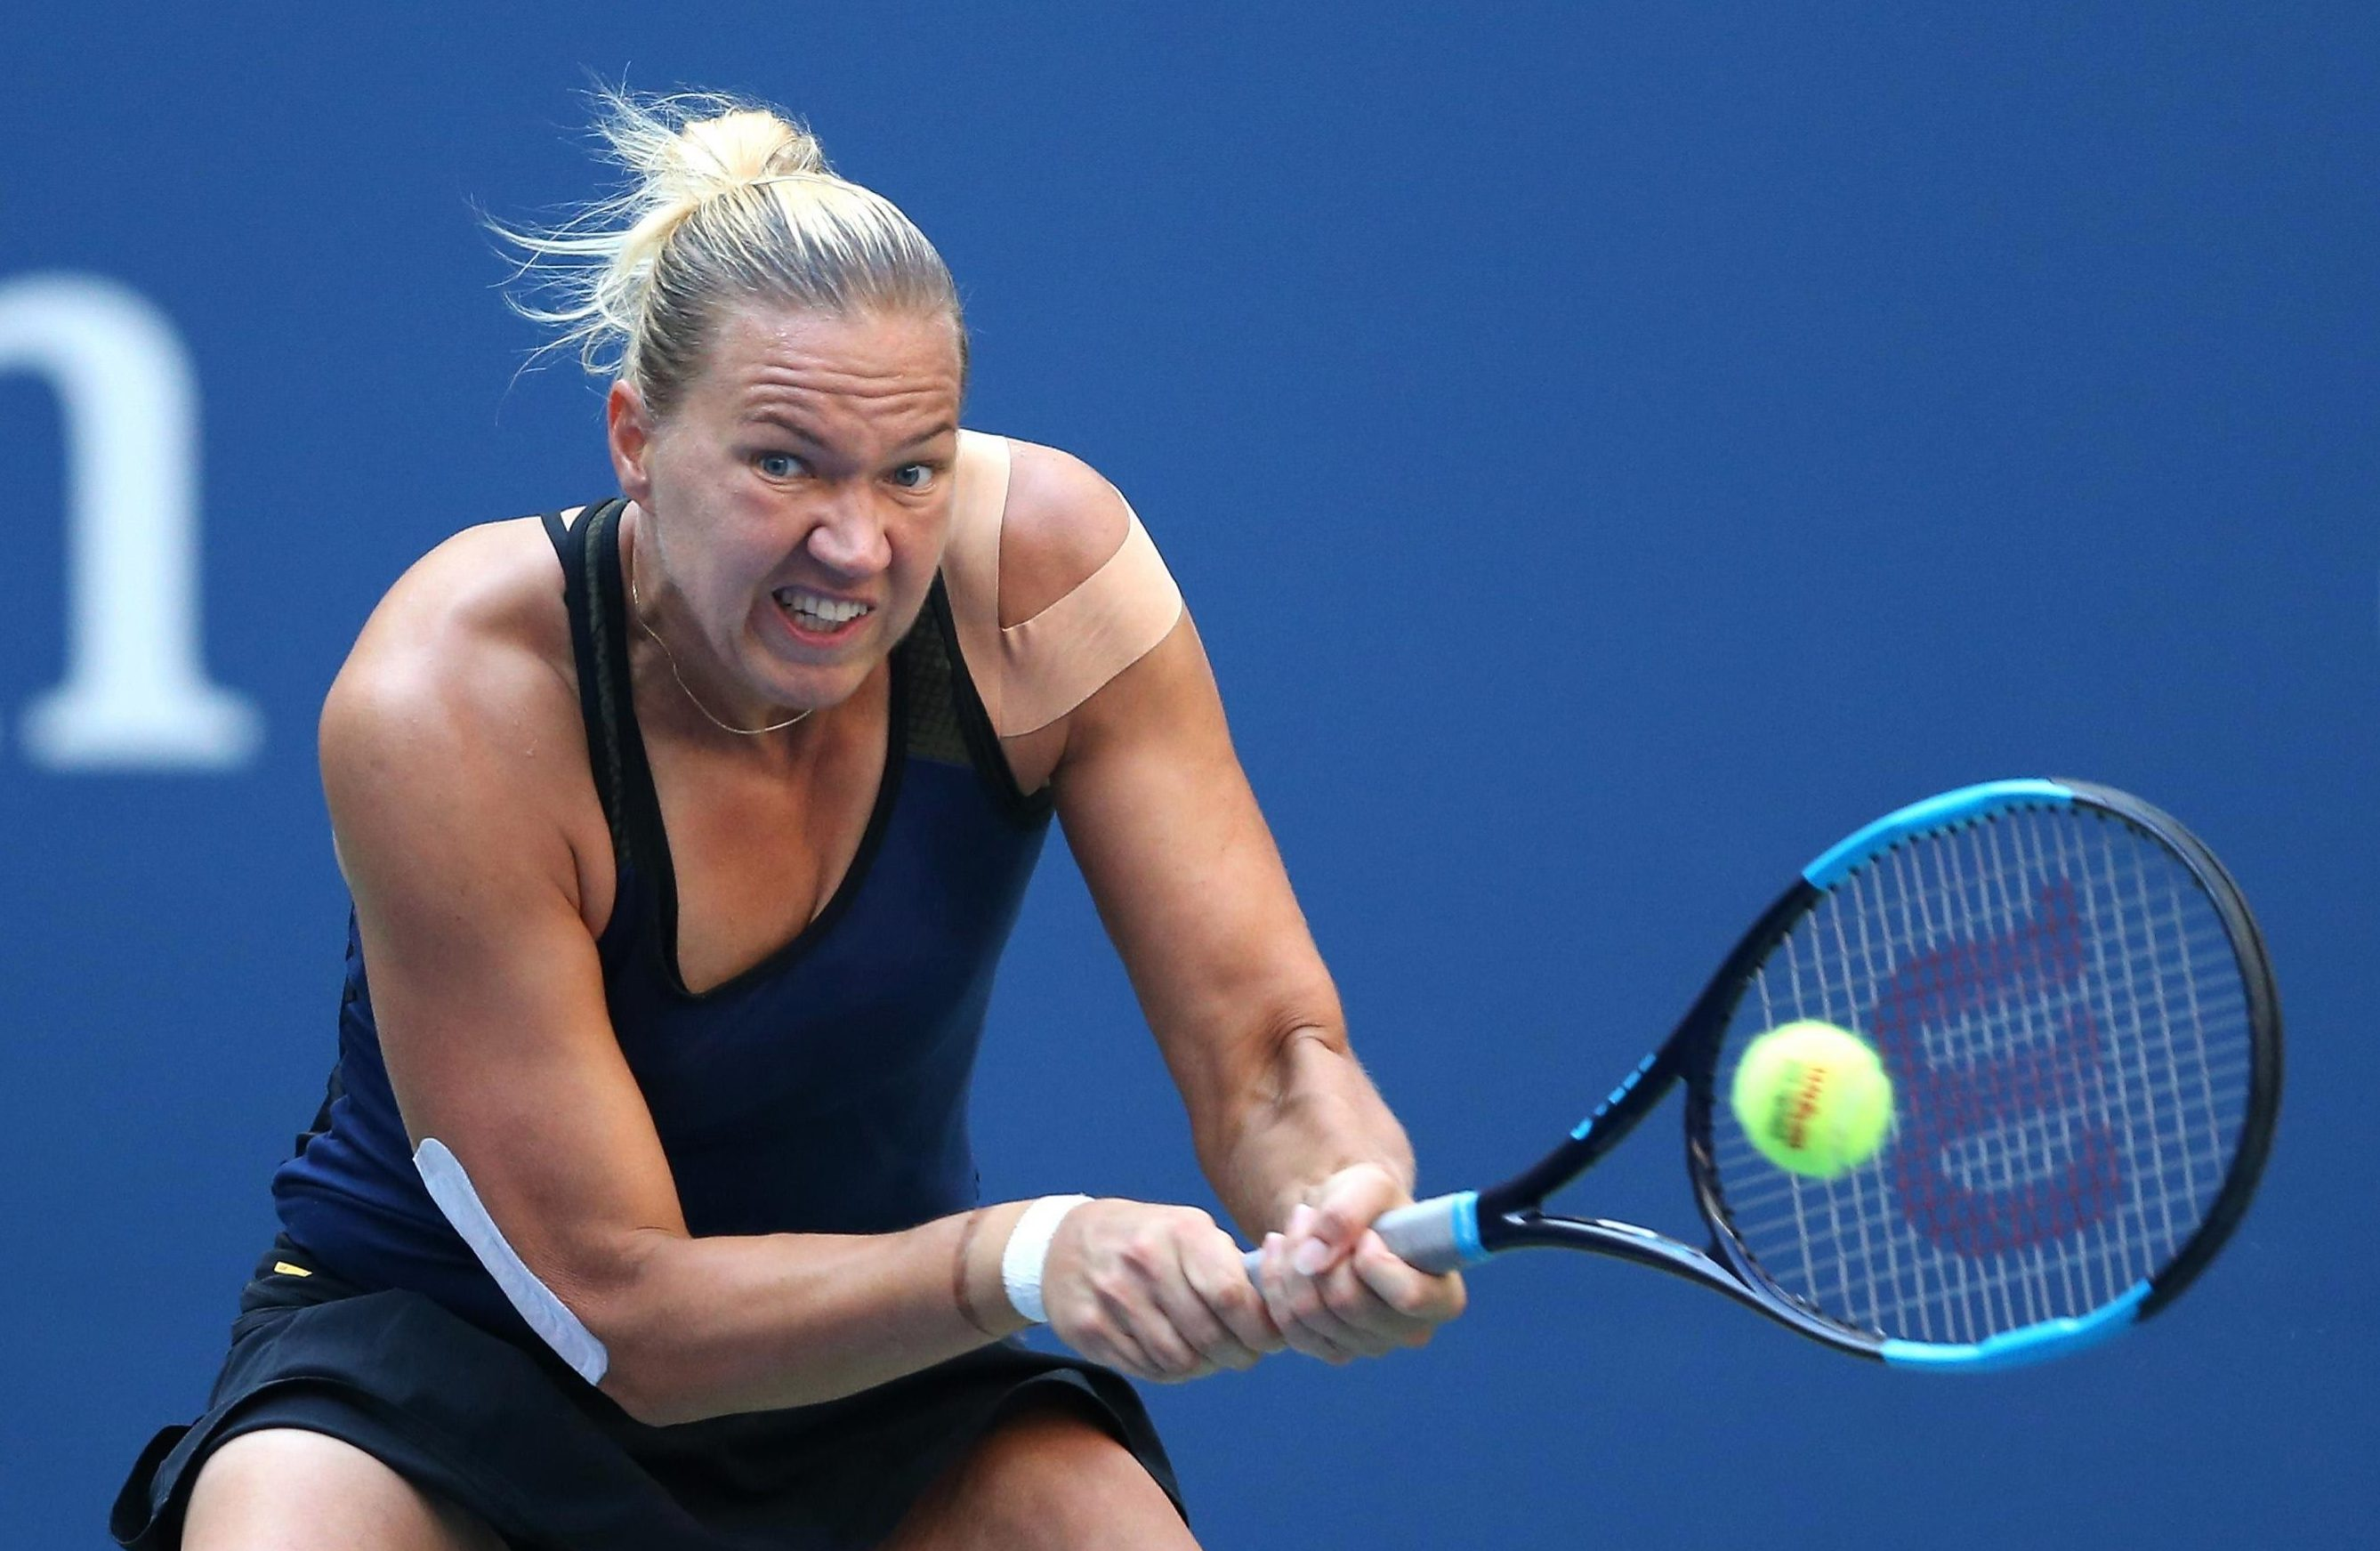 Kanepi is the first player at this years US Open to take a set off Williams